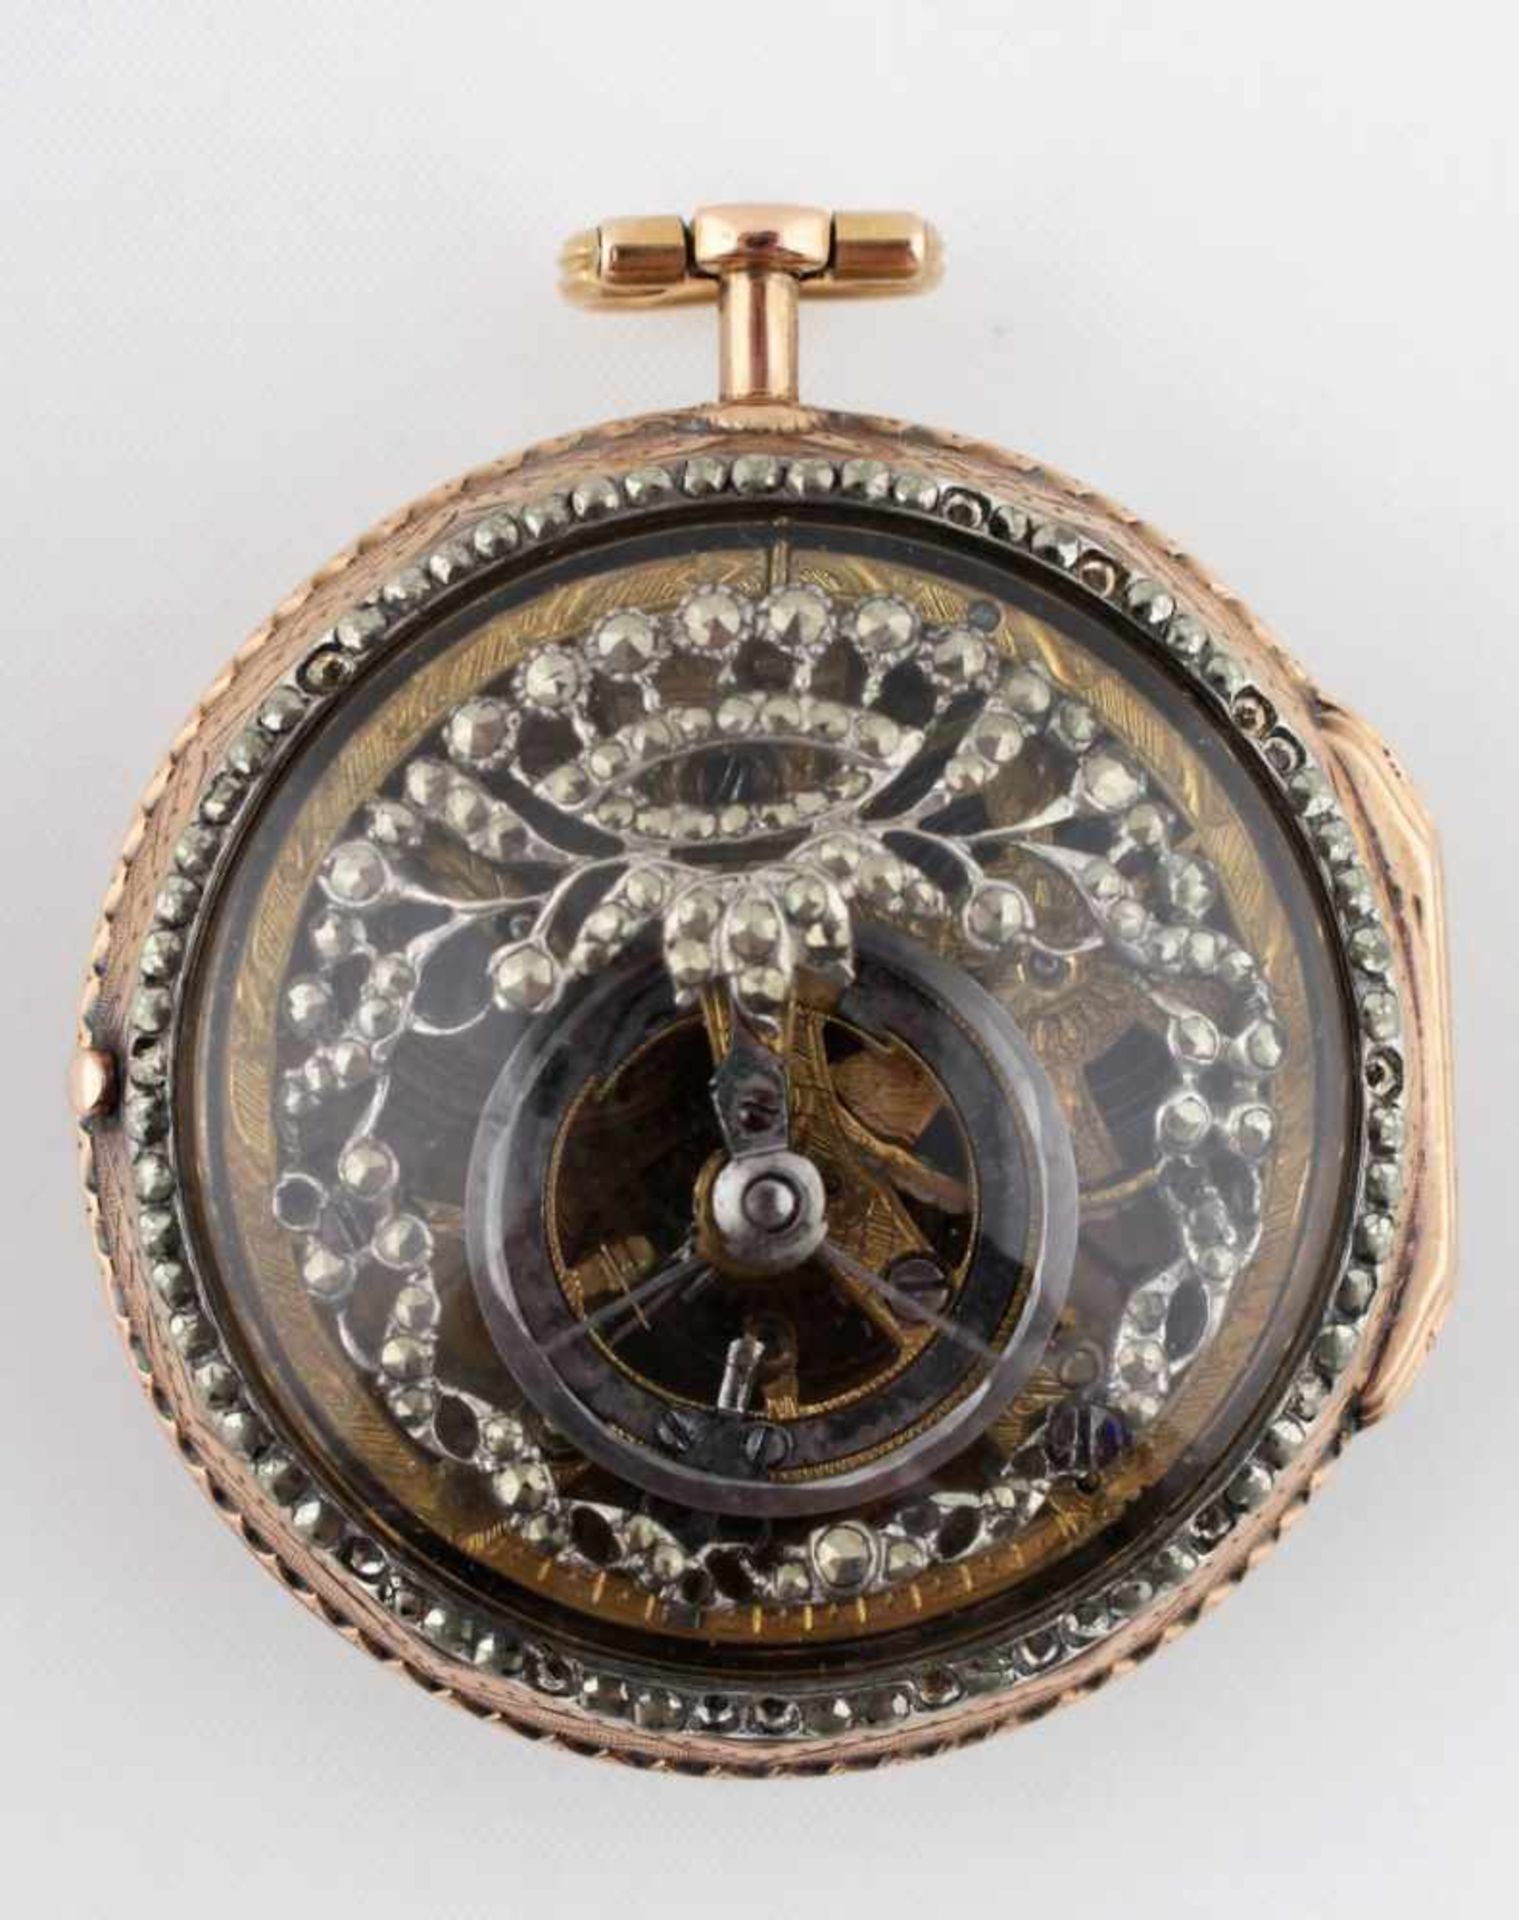 Gold pocket watch First half of the 19th century, pocket watch, gold case Au 720/1000 with silver,